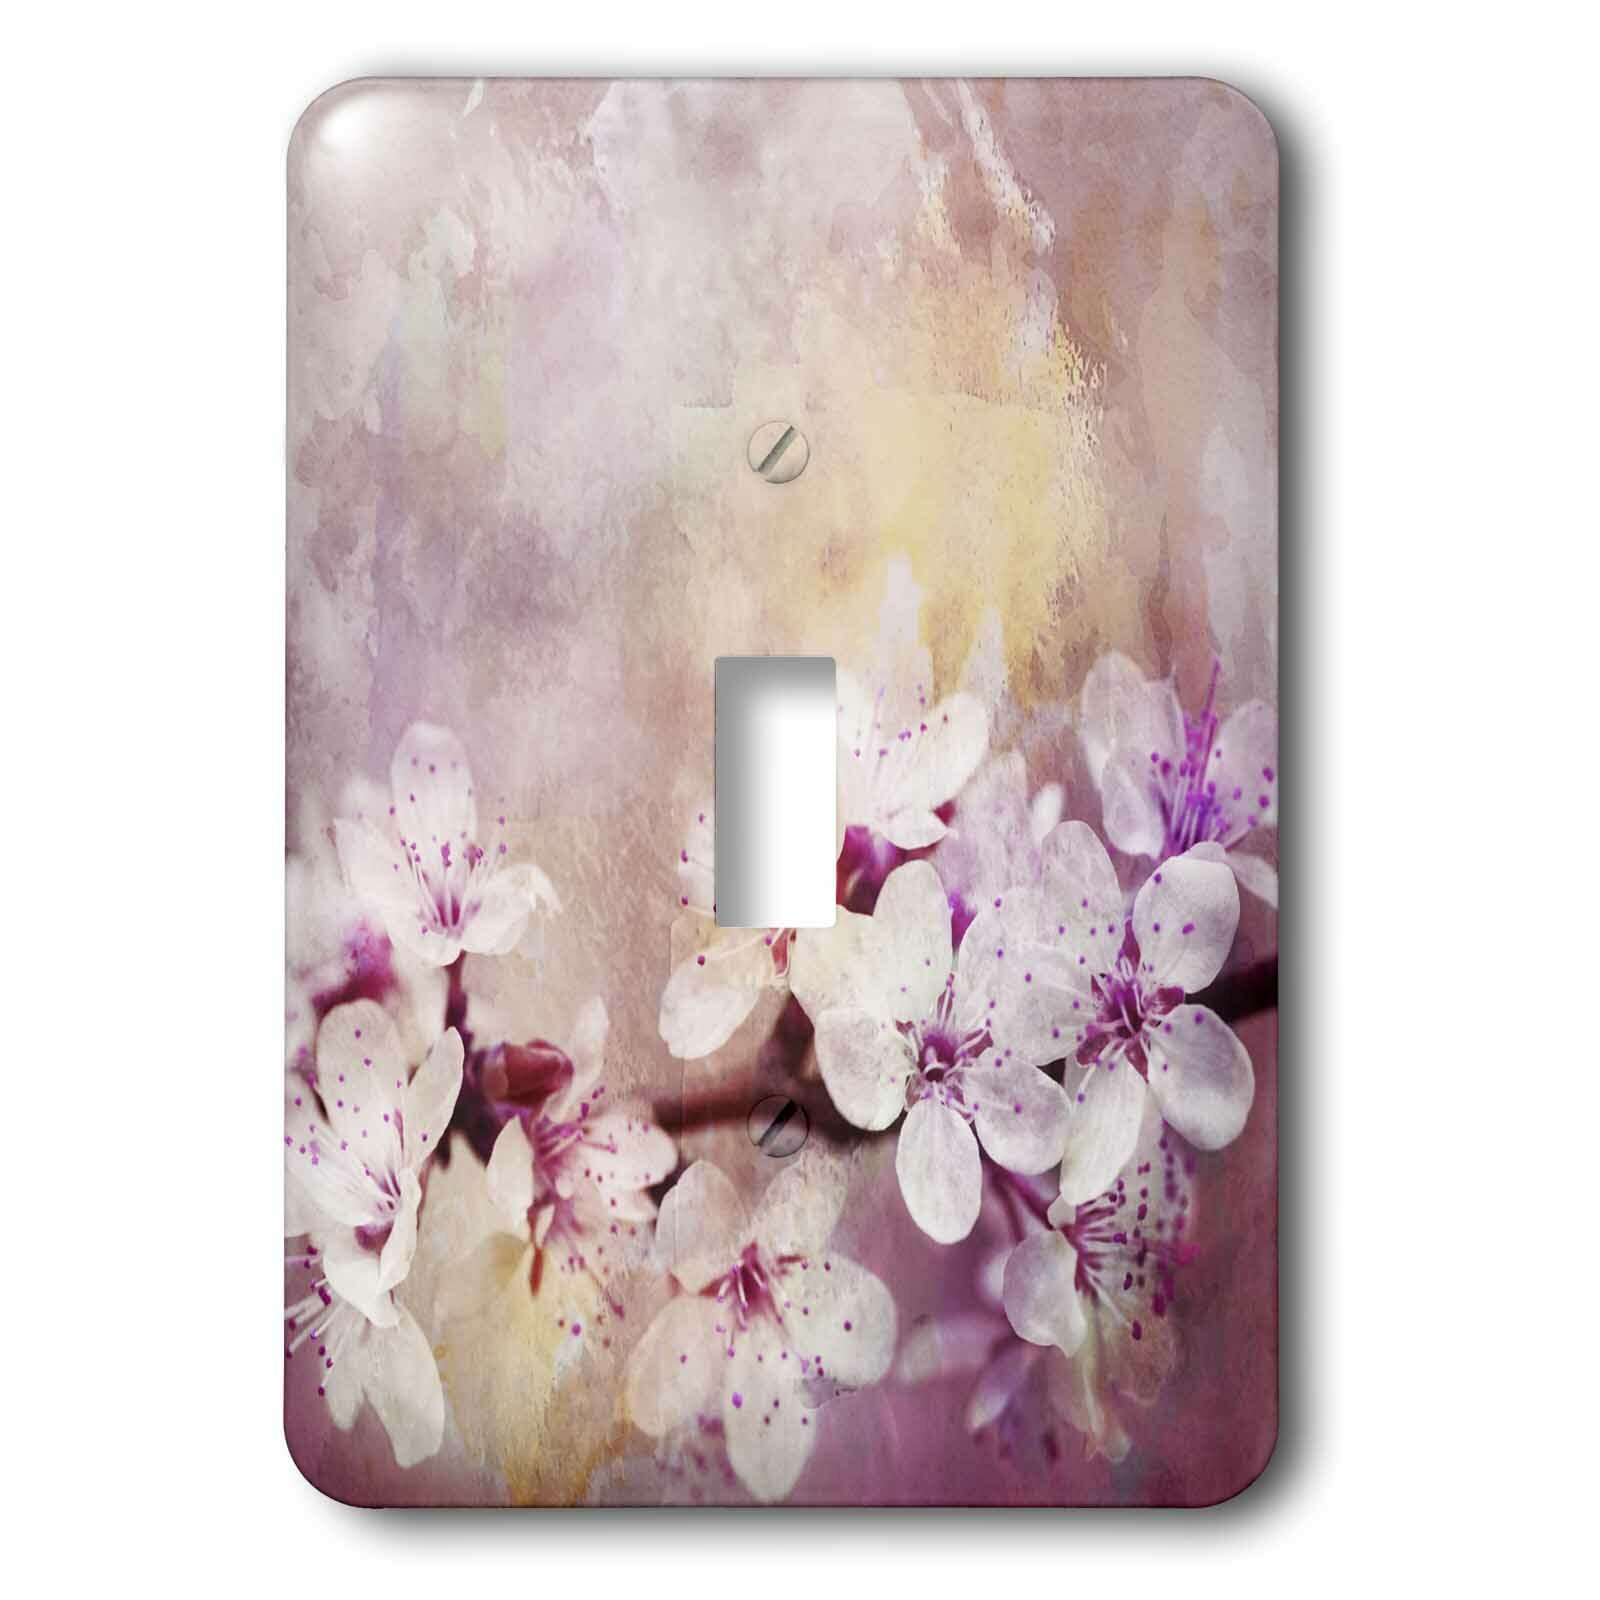 3drose Cherry Blossom 1 Gang Toggle Light Switch Wall Plate Wayfair